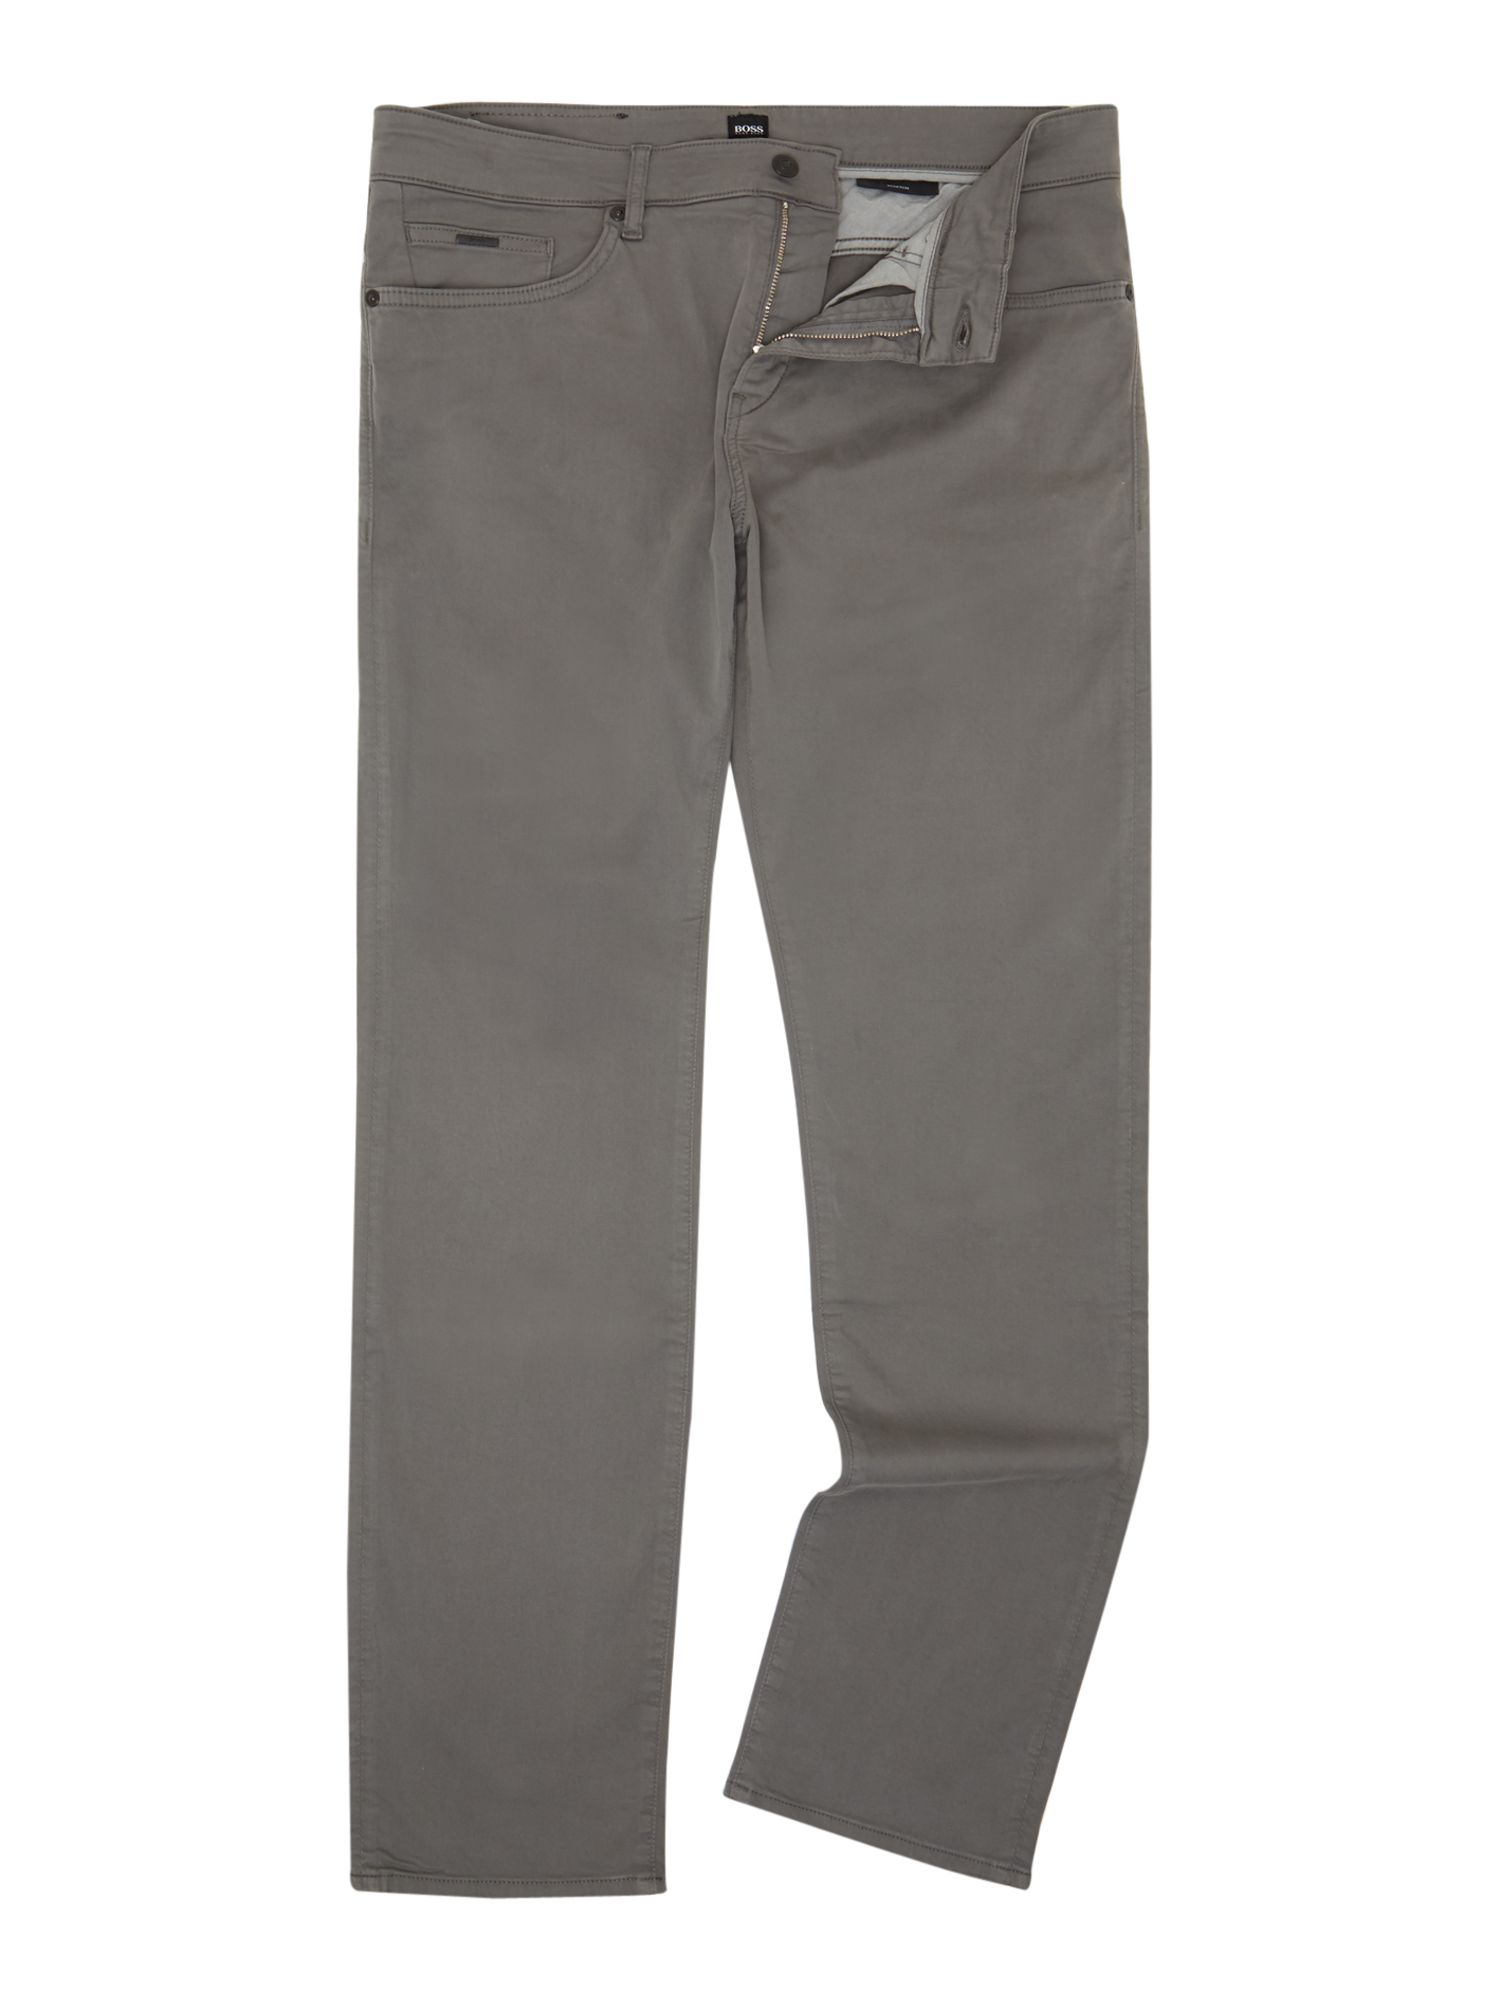 Hugo Boss Delaware 5 Pocket Slim Fit Trouser - House of Fraser